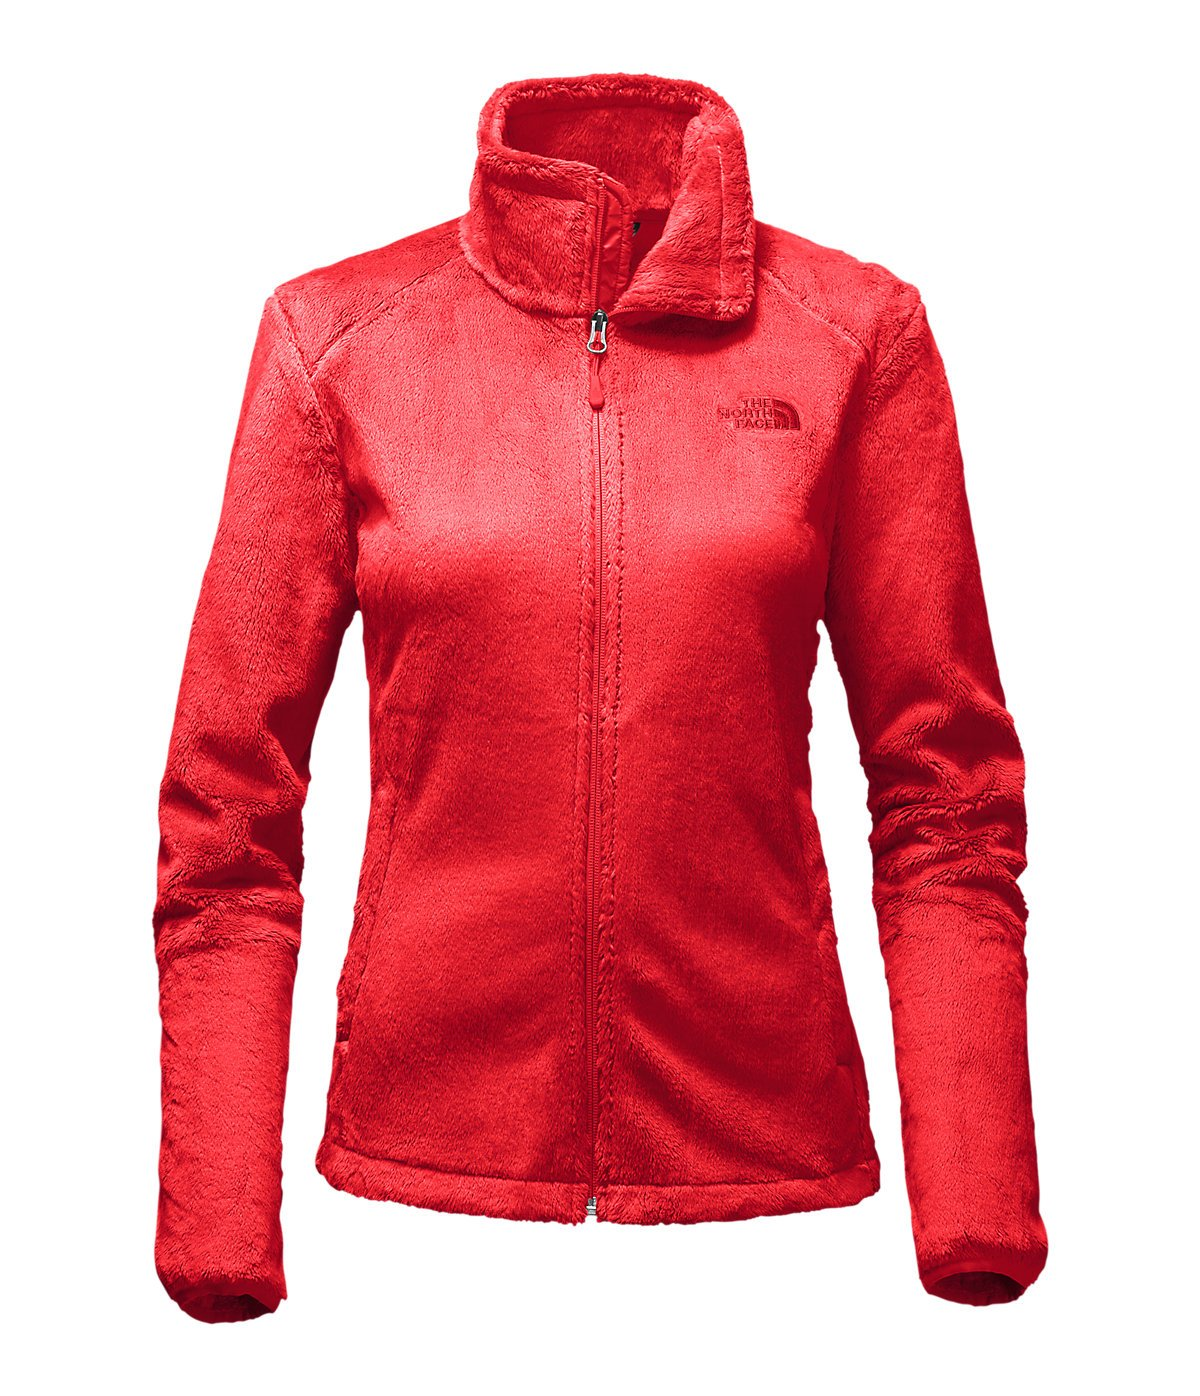 North Face Women's Tech-Osito Jacket The North Face C782